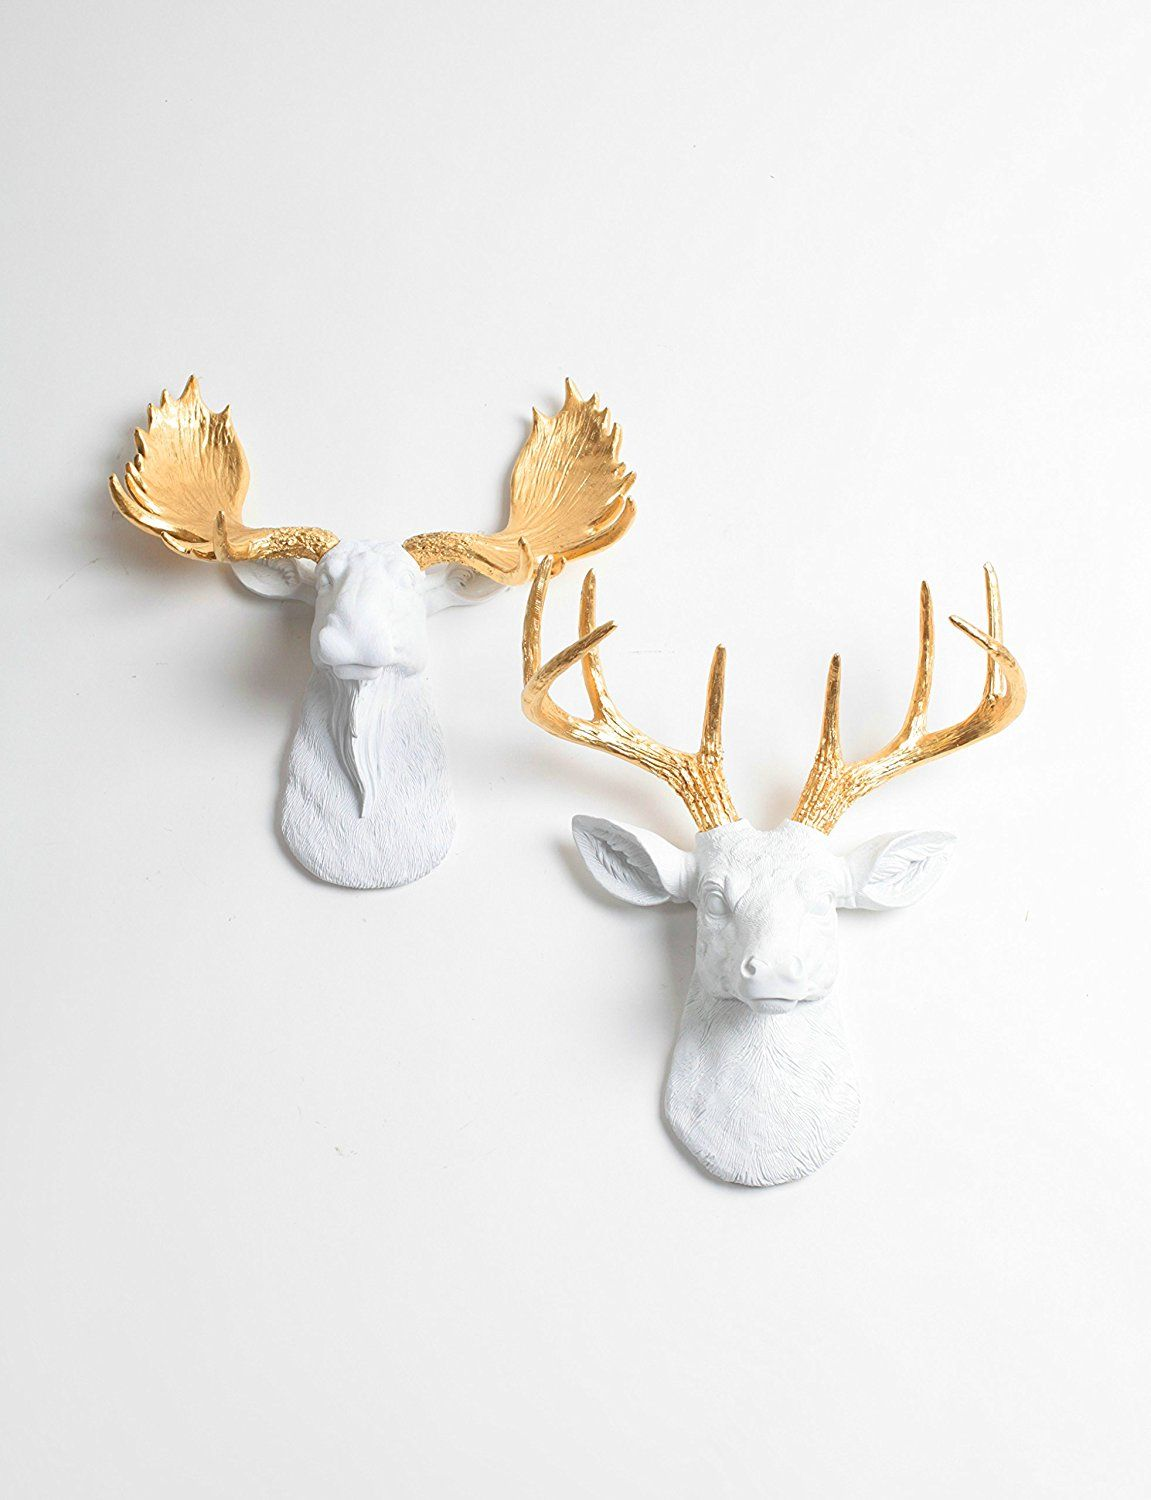 Mini Deer Head Wall Decor And Mini Moose Mount Set White Stag And Moose Head With Gold Antlers By White Fa White Faux Taxidermy Moose Head Wall Art Faux Deer